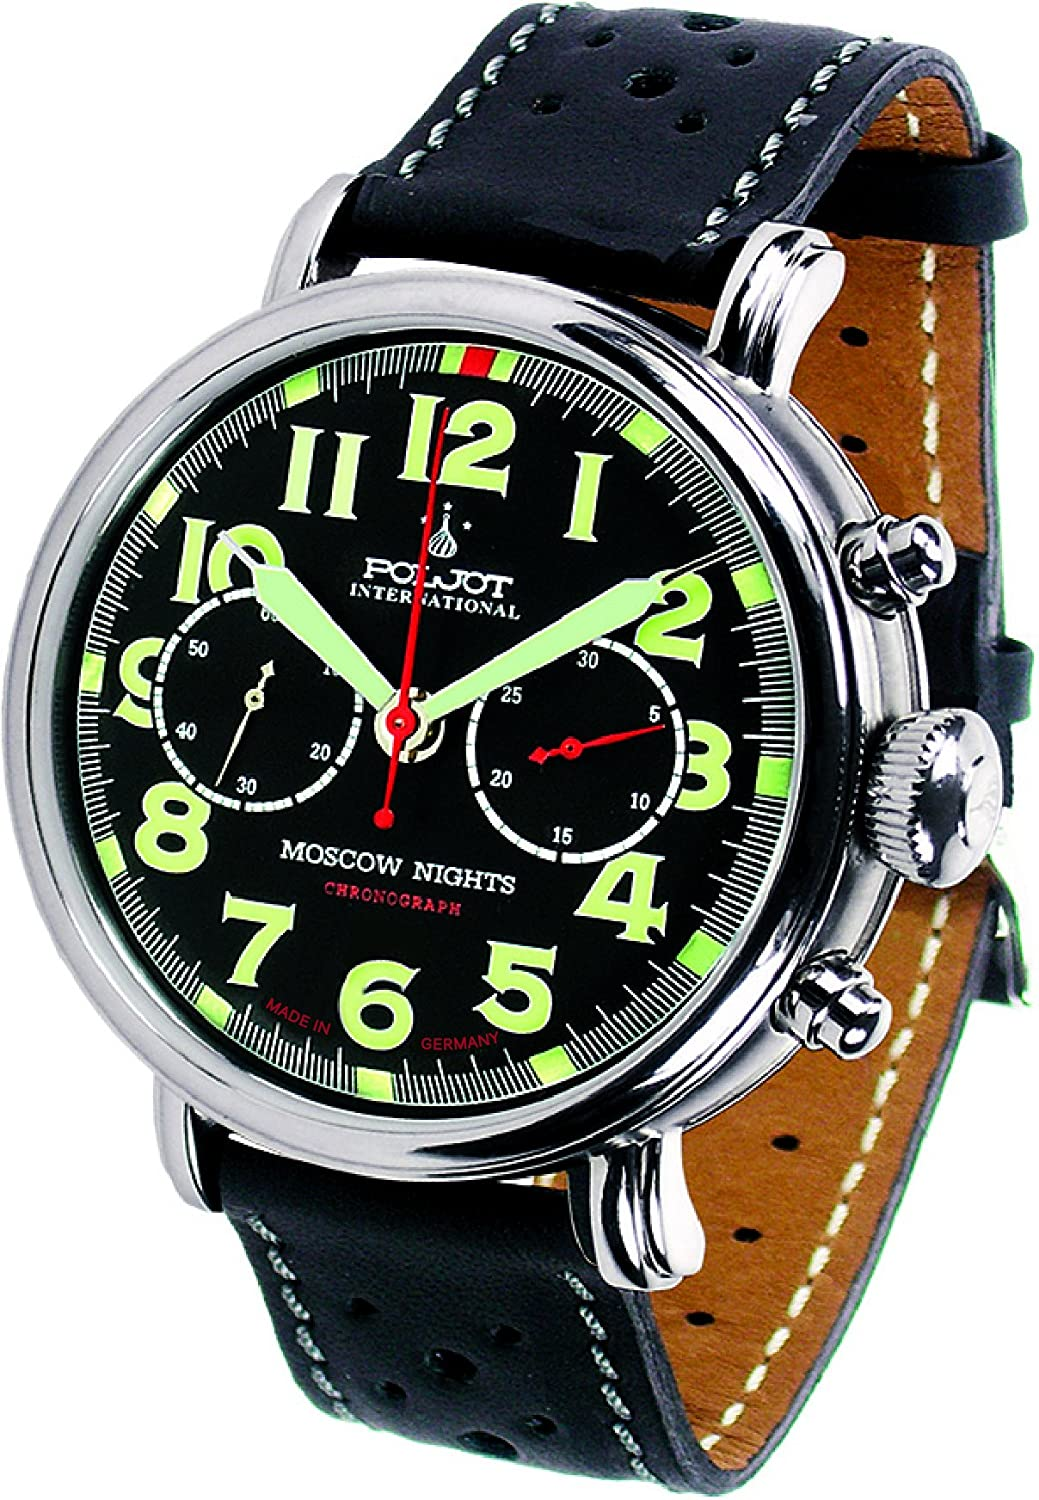 POLJOT Int Chronograph Moscow Nights Mechanische Russische Uhr Lederband Schwarz